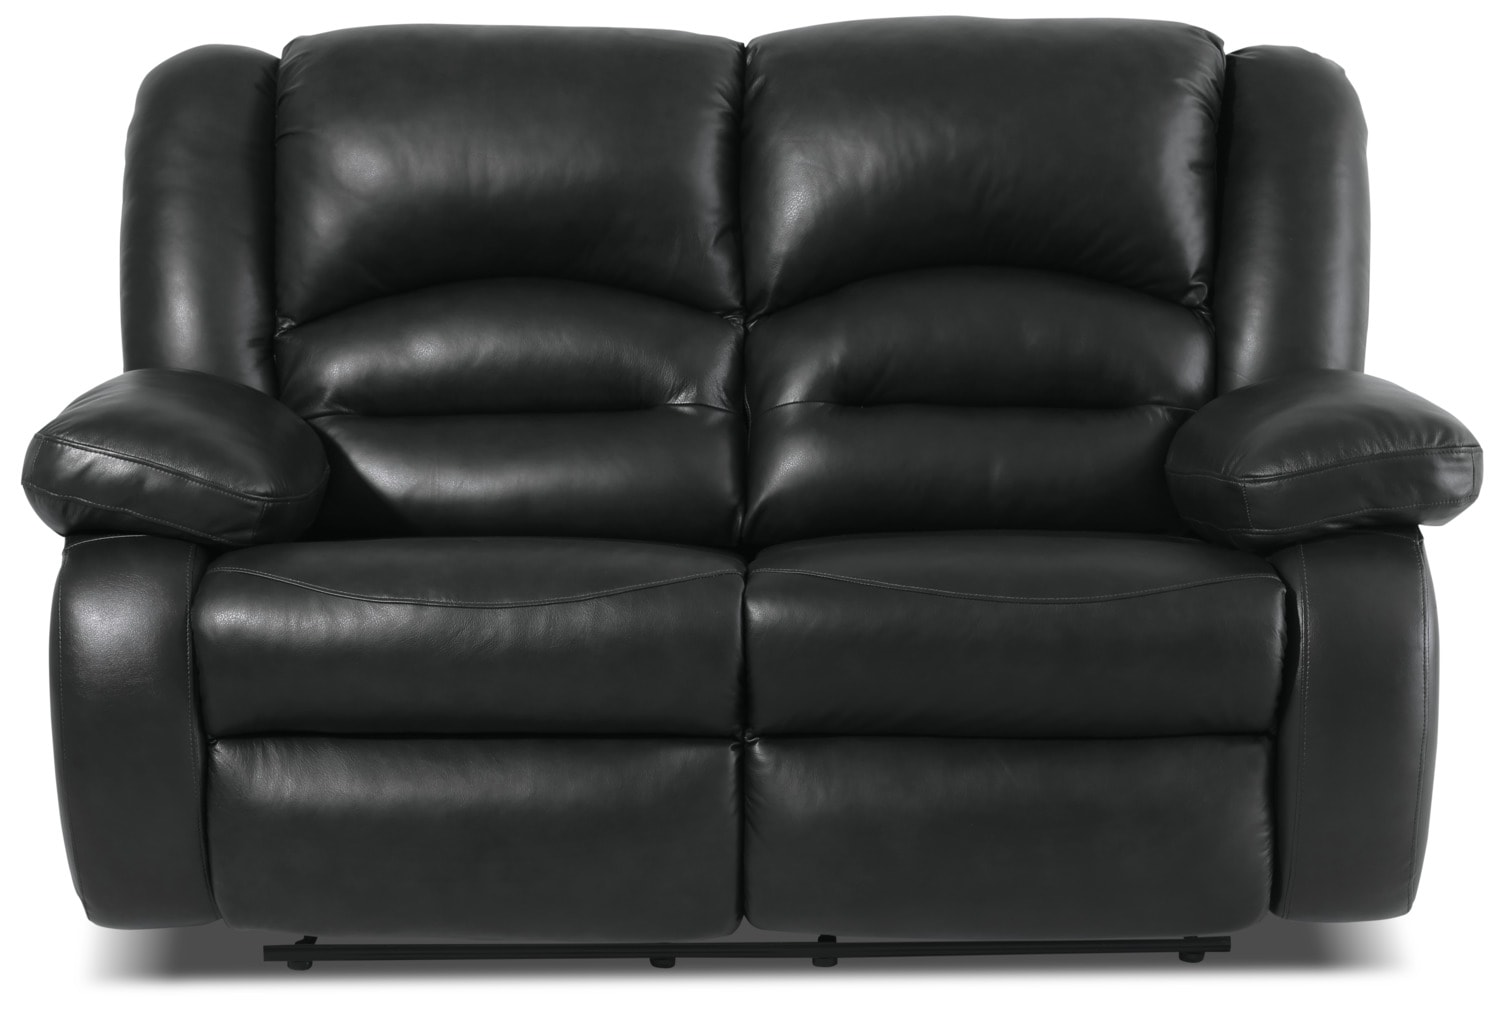 Living Room Furniture - Toreno Genuine Leather Reclining Loveseat – Black